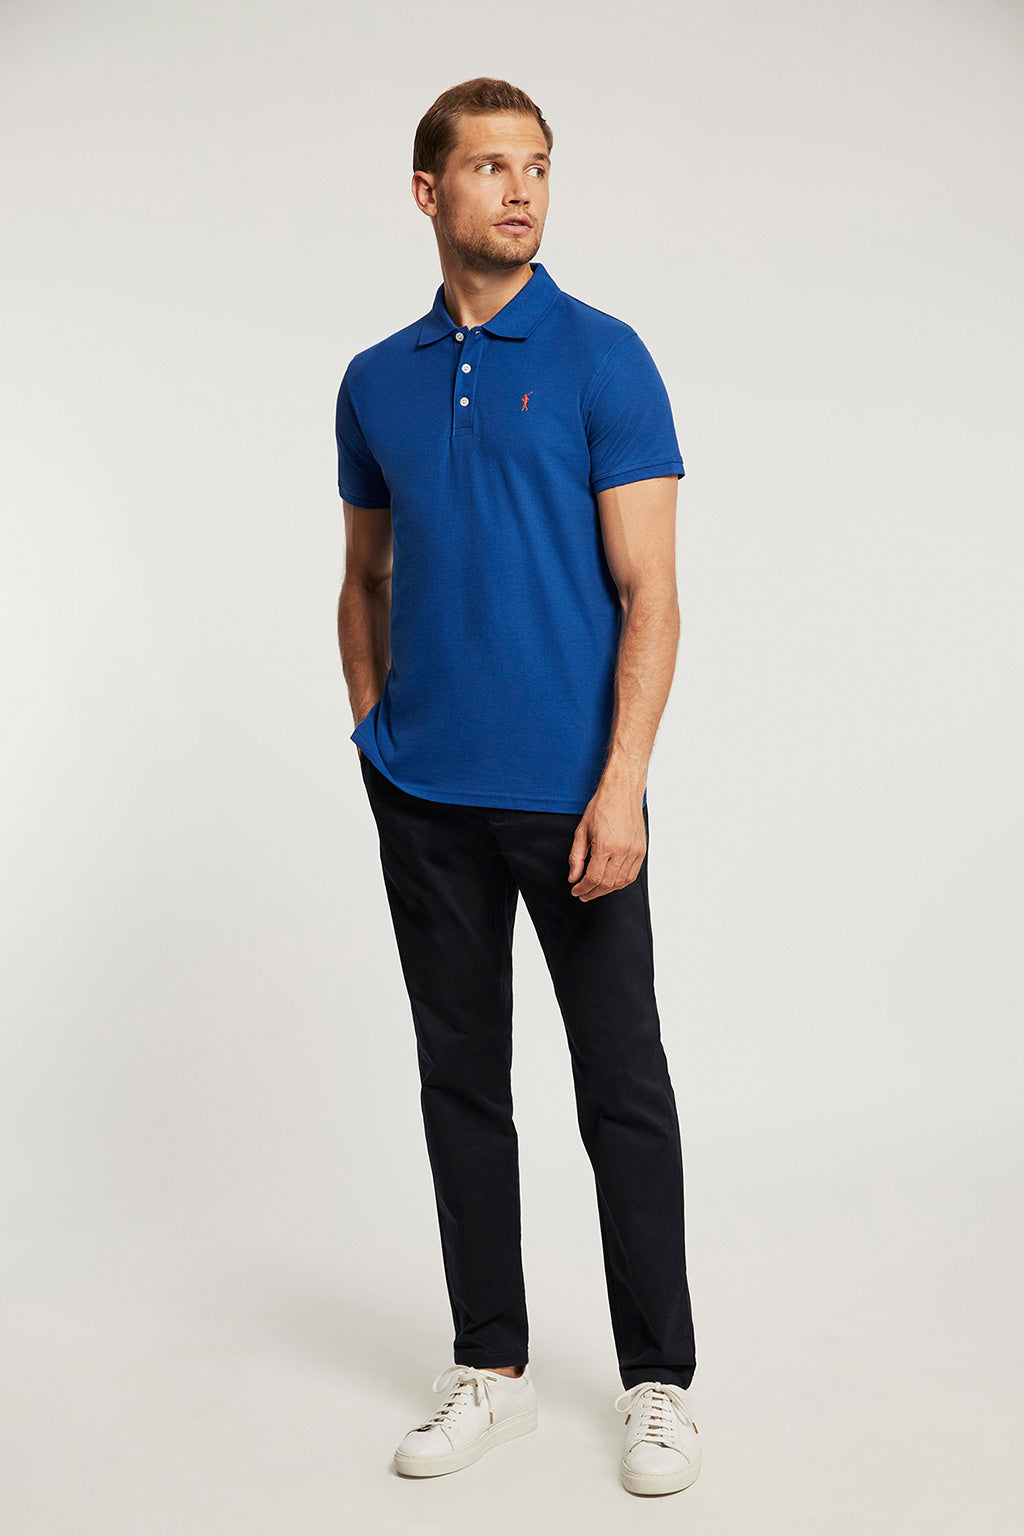 Polo piqué azul royal